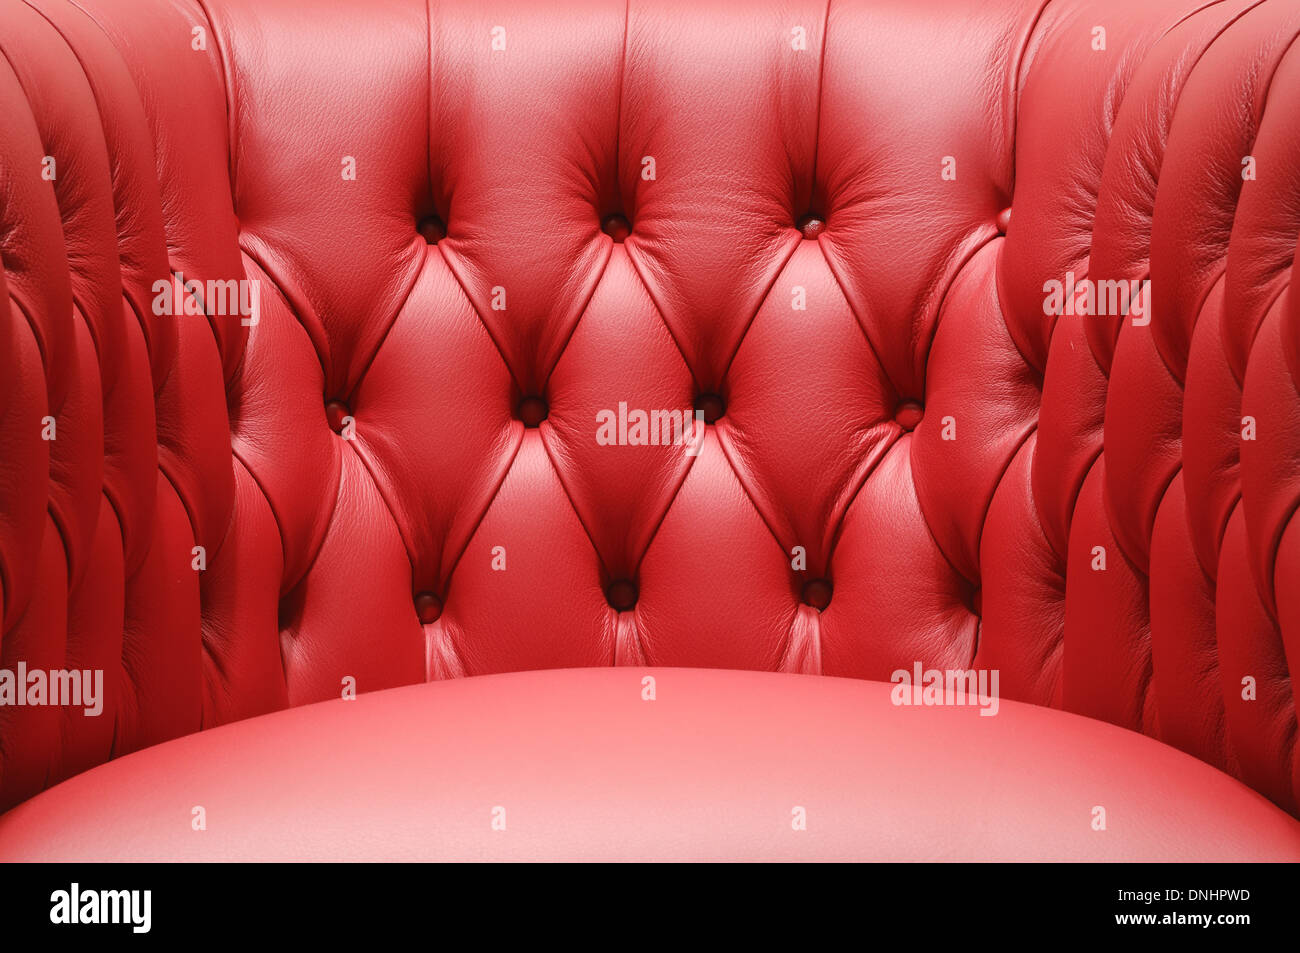 A section of a comfortable red leather sofa chair furniture. - Stock Image